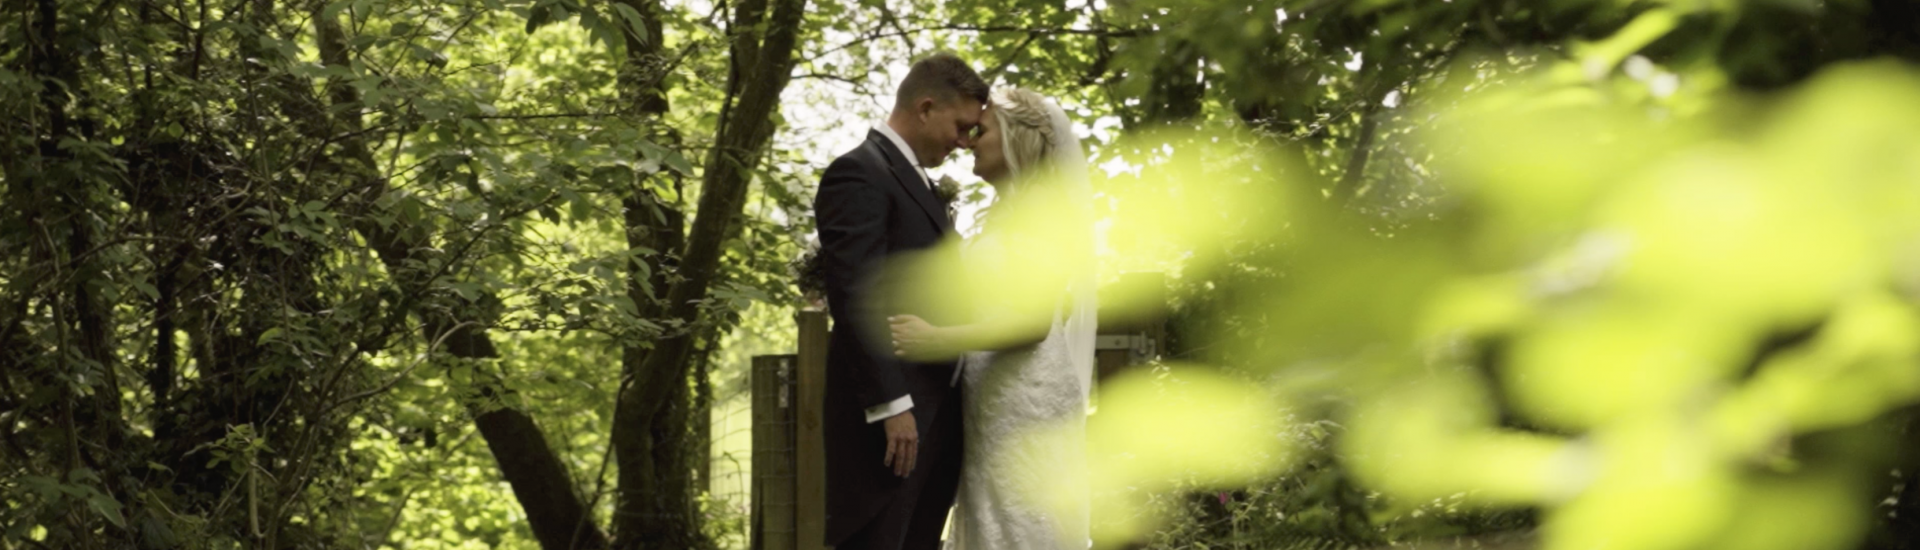 The Green Cornwall wedding video